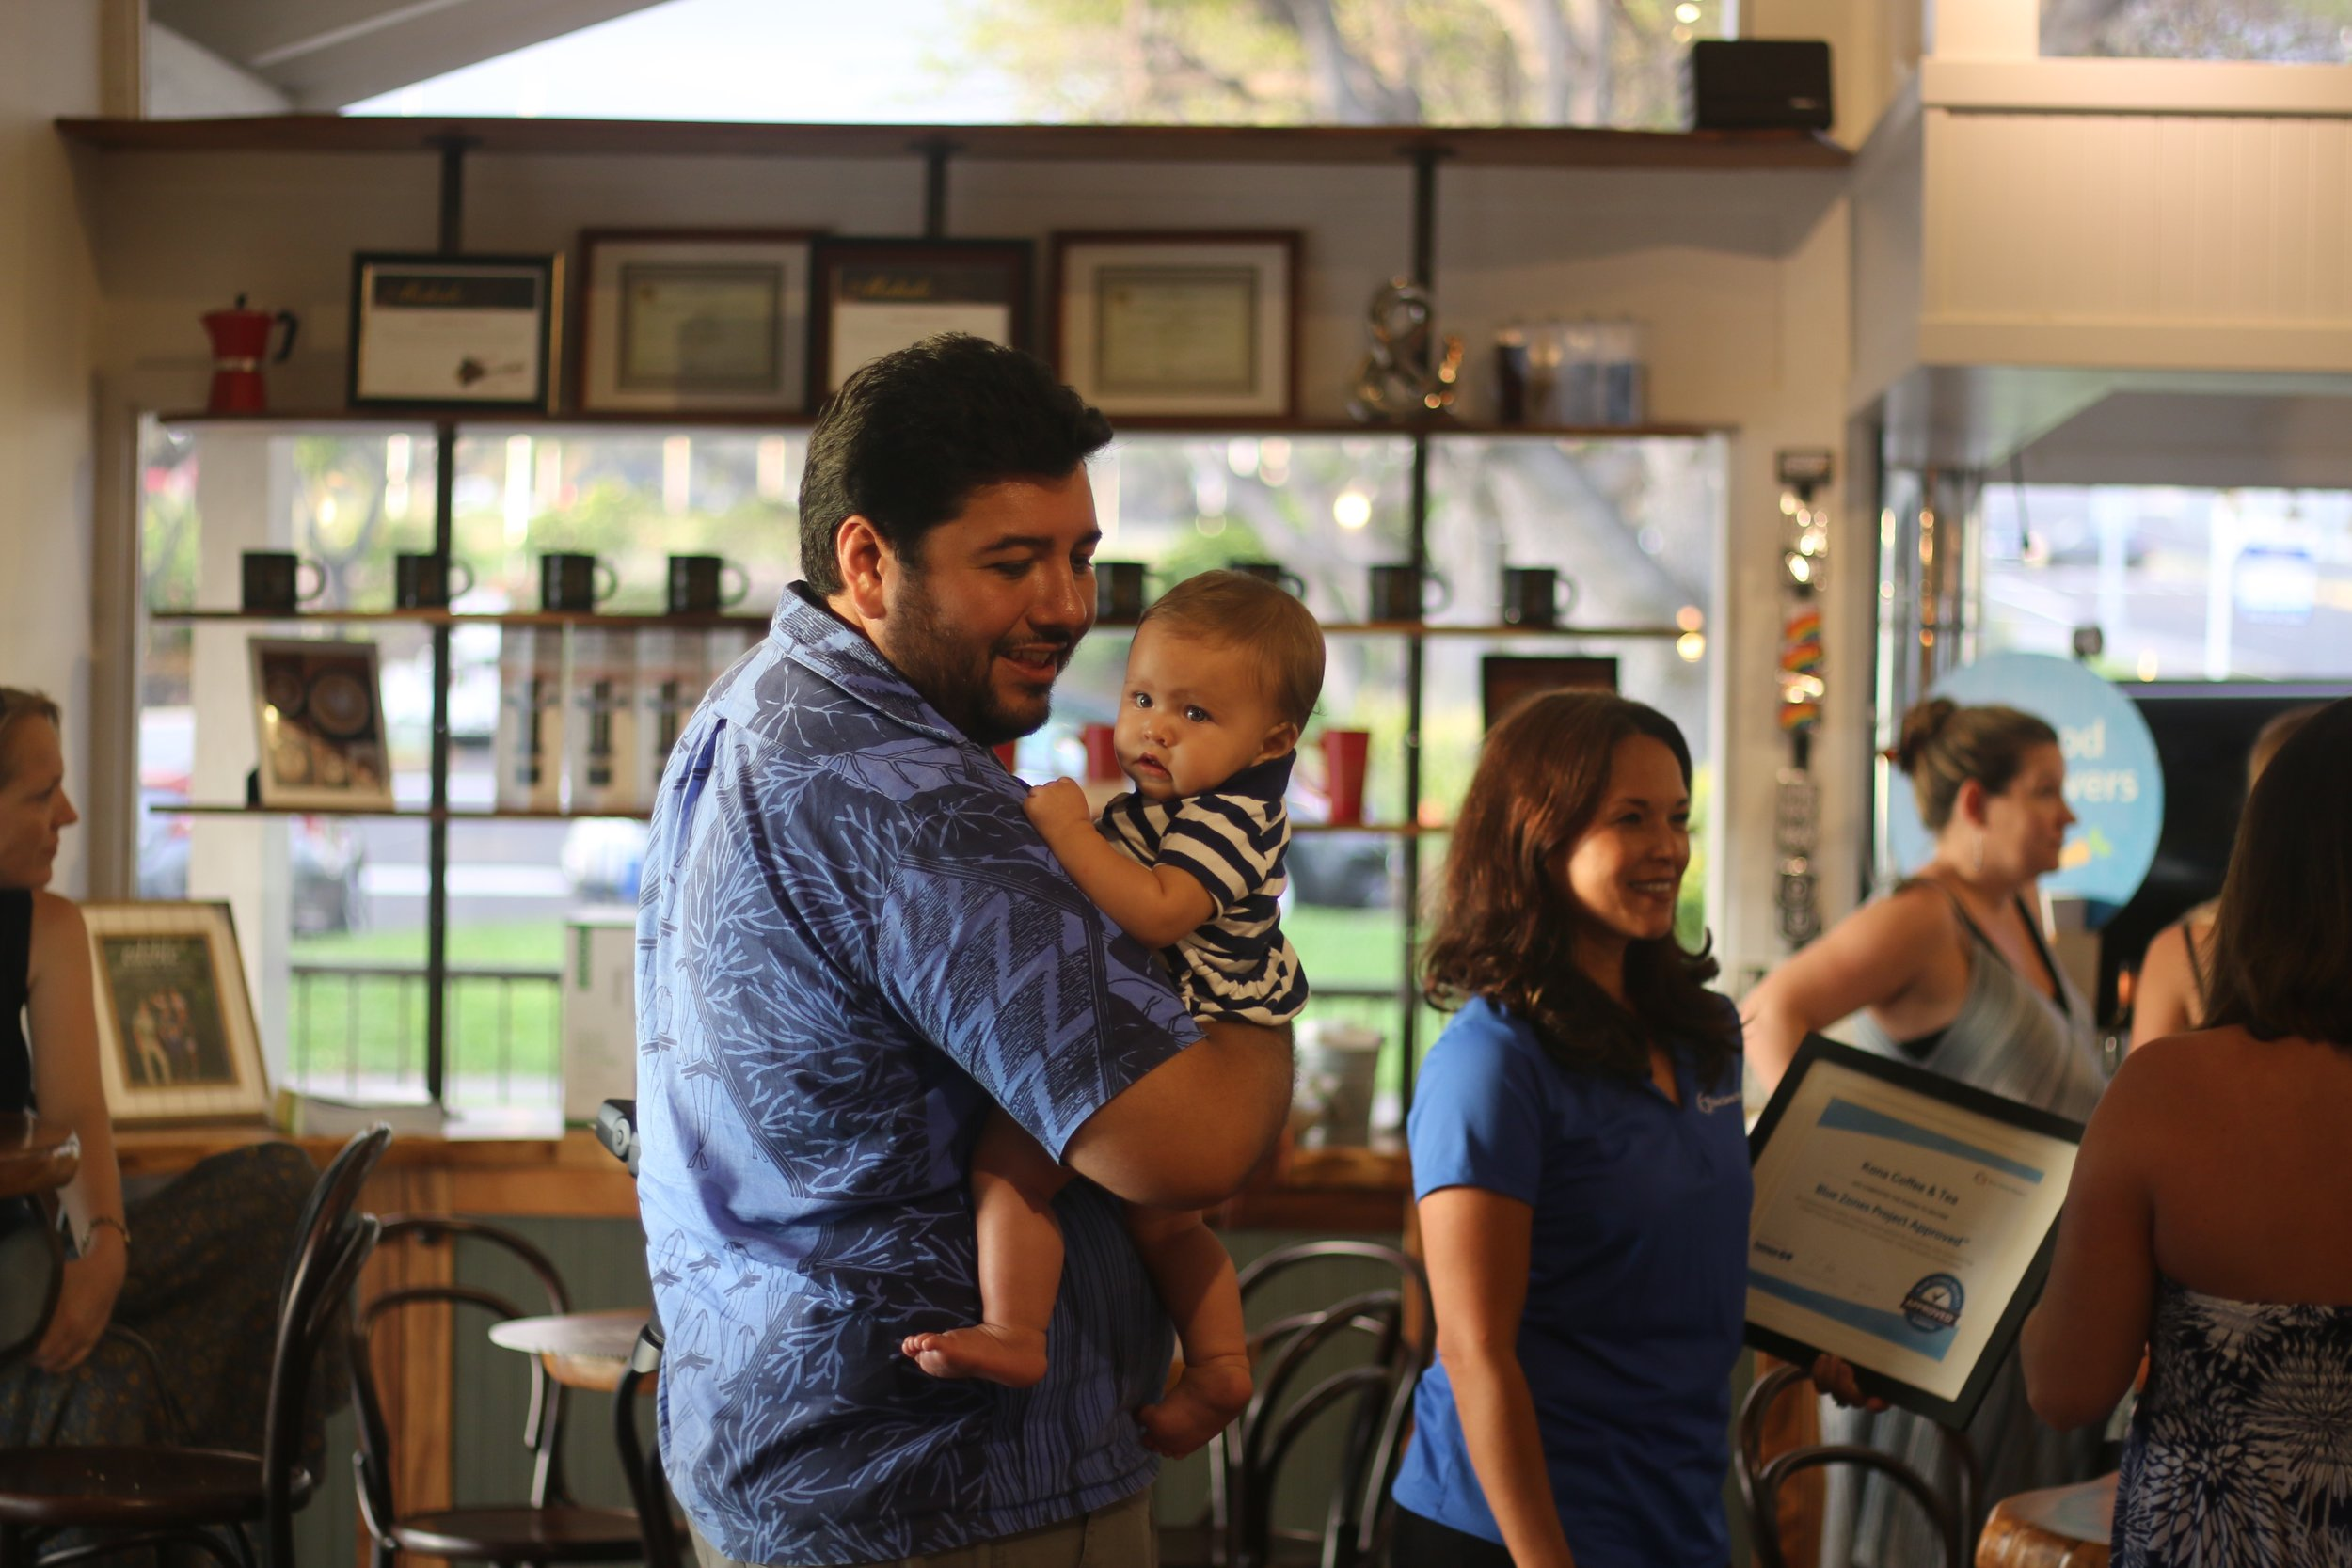 T. Ilihia Gionson and his daughter Kawaipōmaikaʻi at the Blue Zones launch party at Kona Coffee & Tea. PHOTO: Chance Ortiz